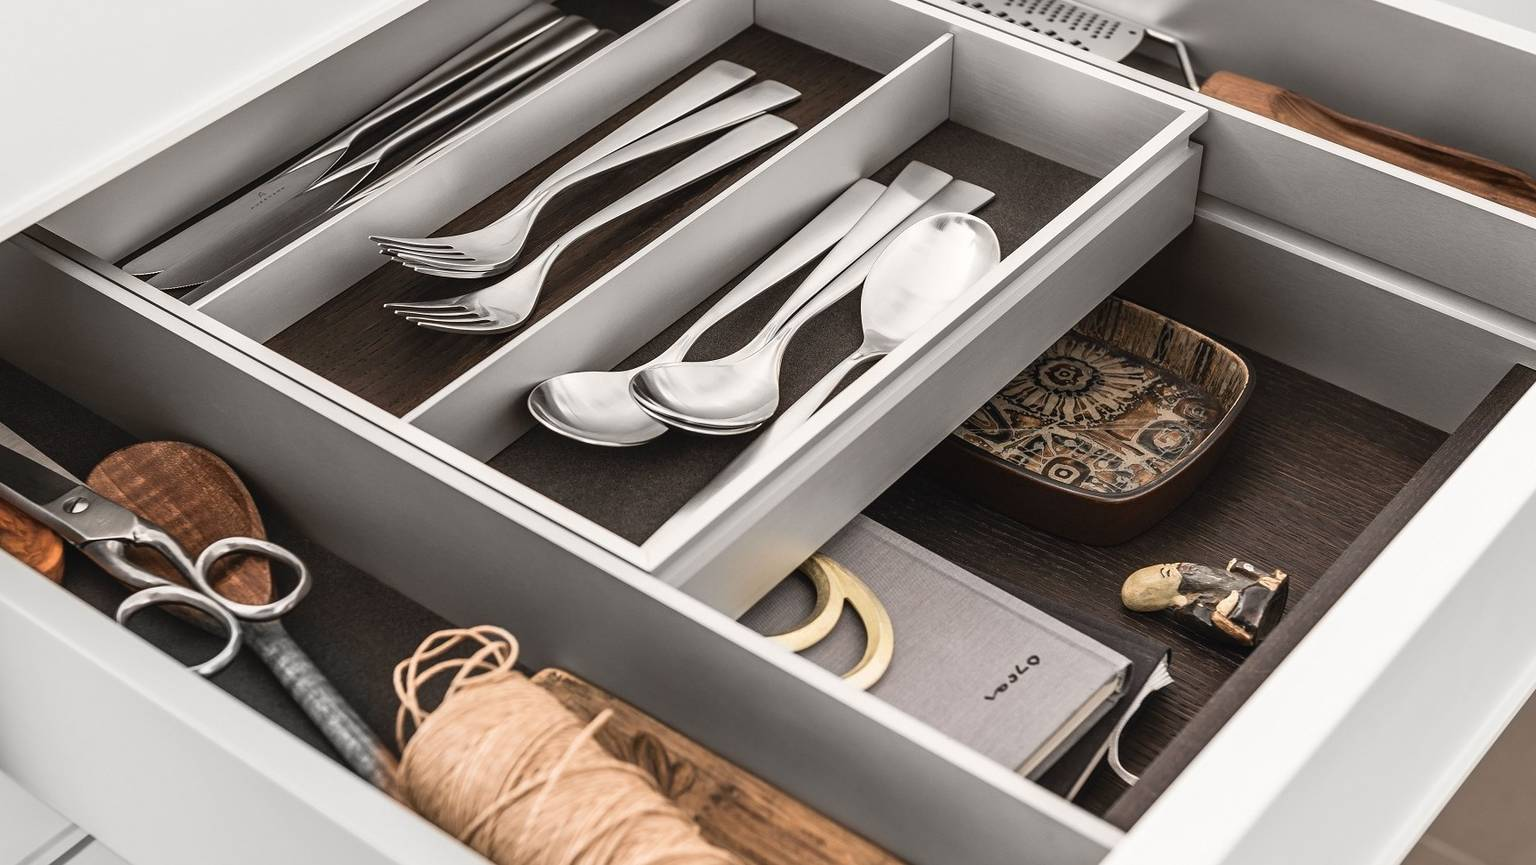 A bi-level drawer elegantly doubles storage space in SieMatic kitchen drawers and pull-outs